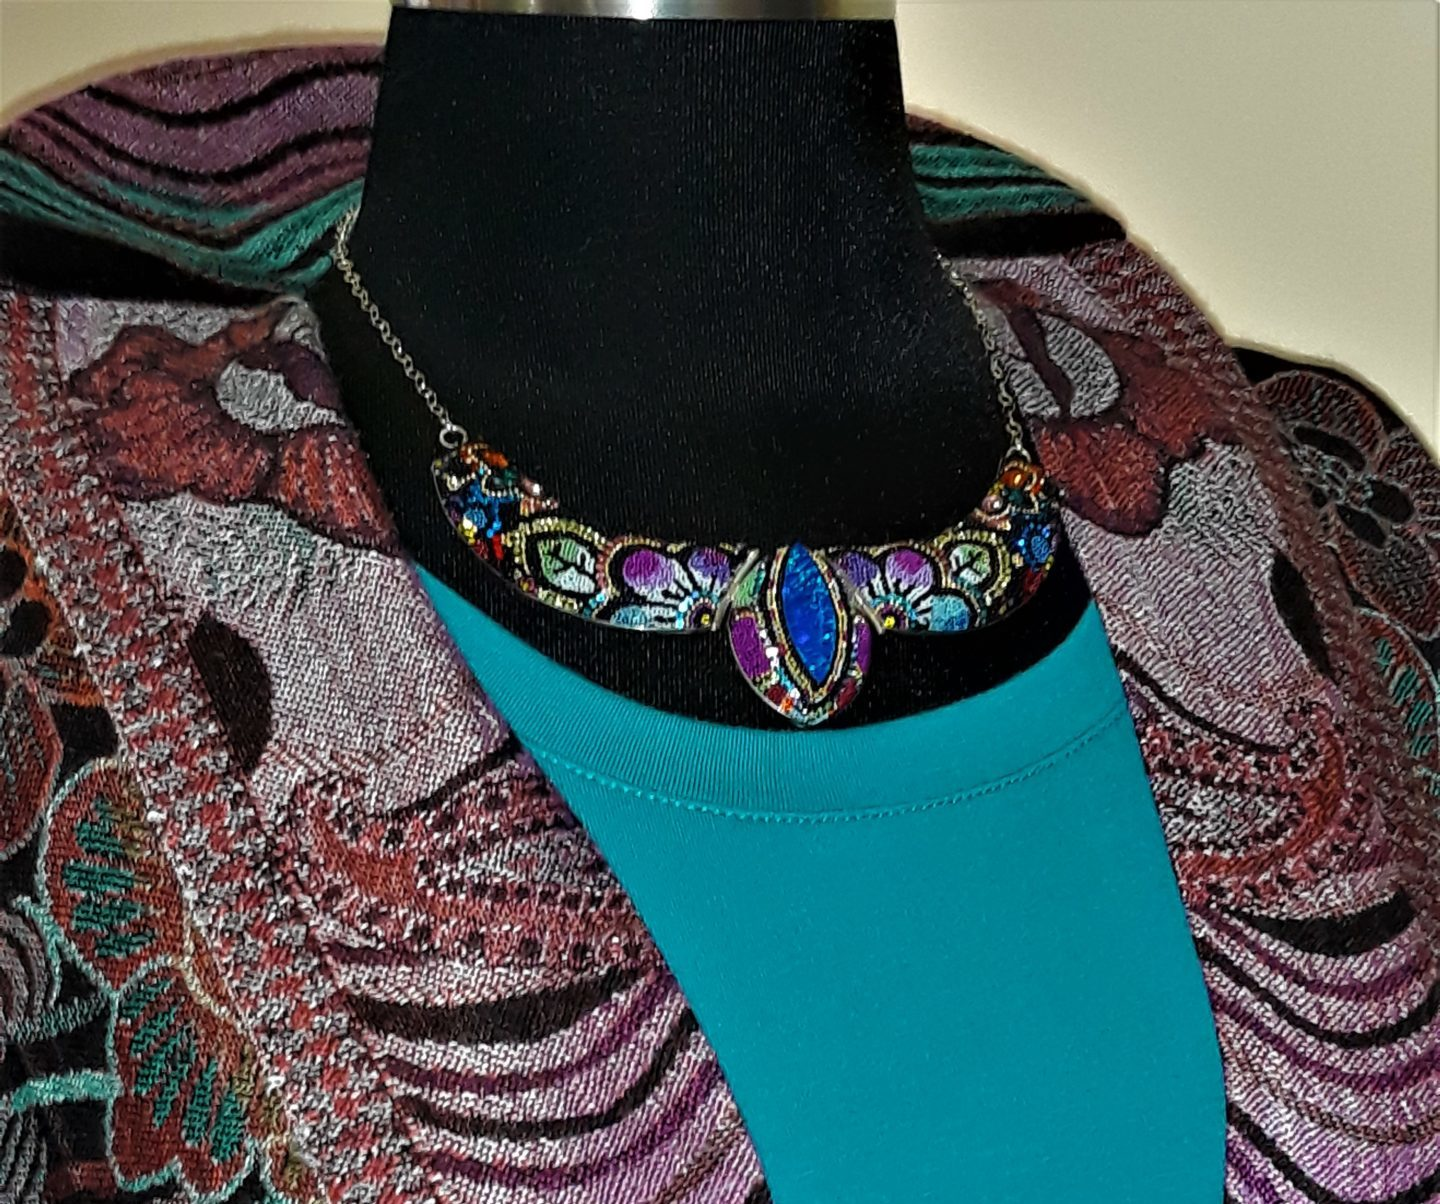 mosiaco-necklace-on-turquois-top-and-jacket-e1576534967602